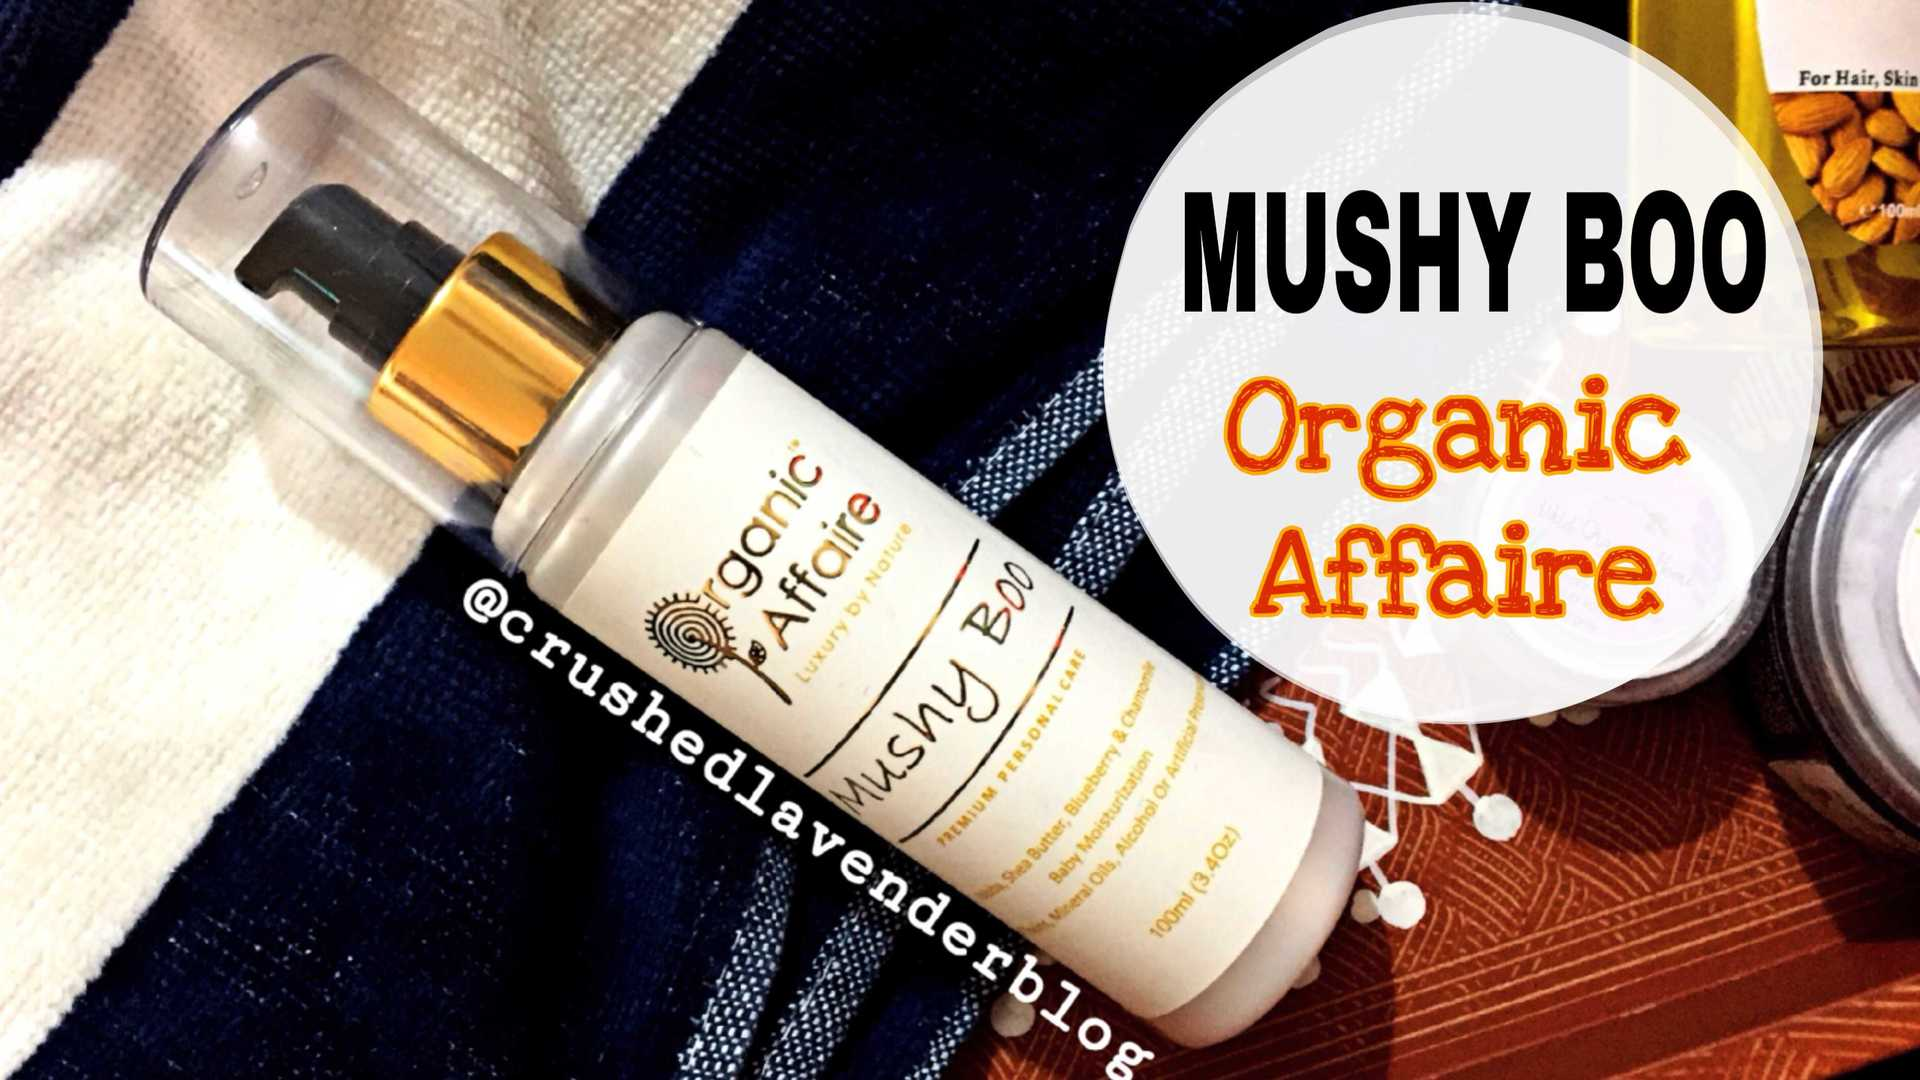 MUSHY BOO-Baby Lotion image